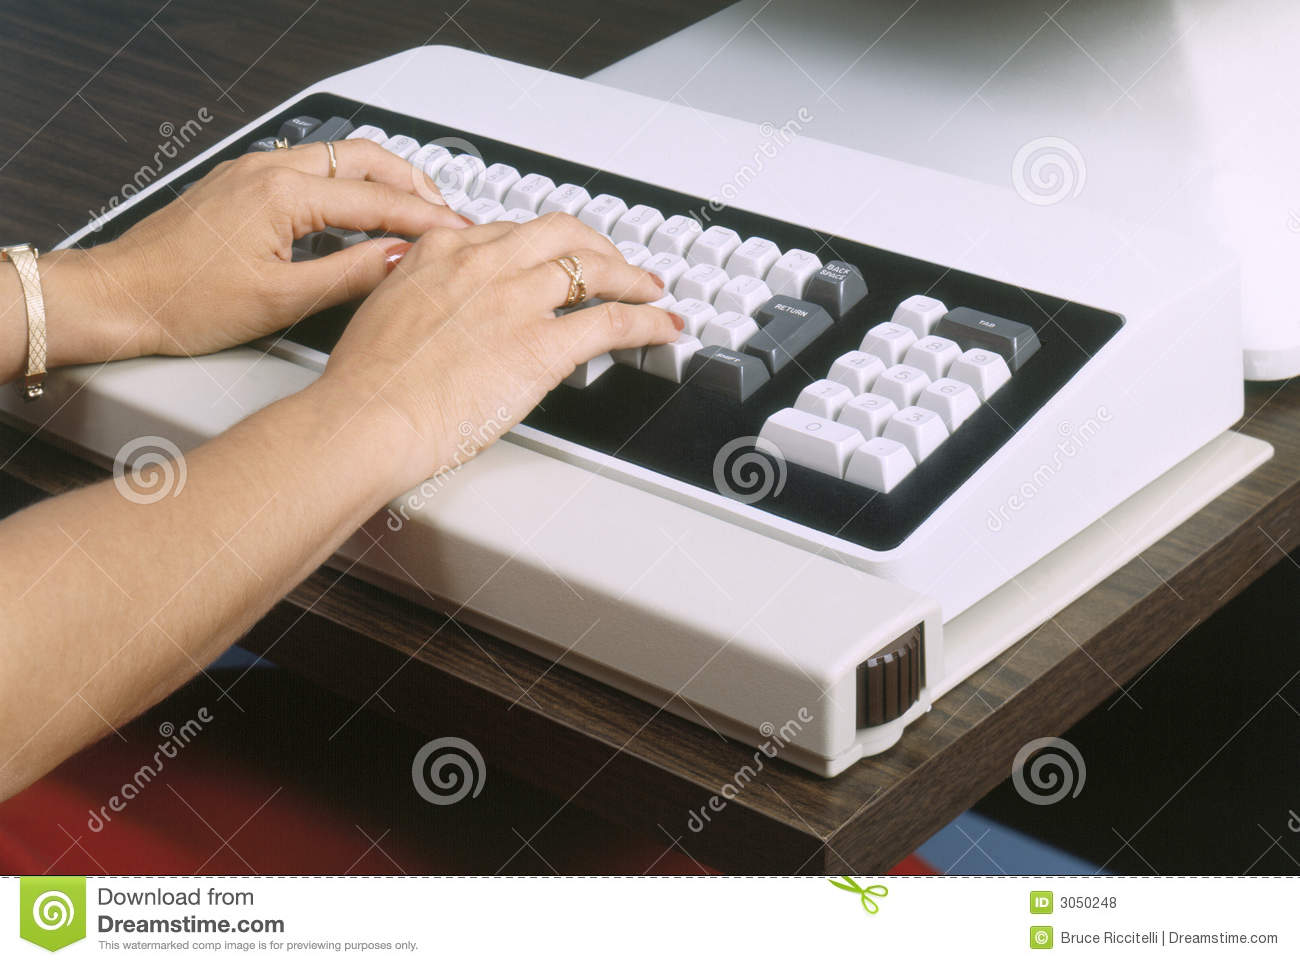 Vintage Computer Keyboards Vintage Computer Keyboard Royalty Free Stock Photos